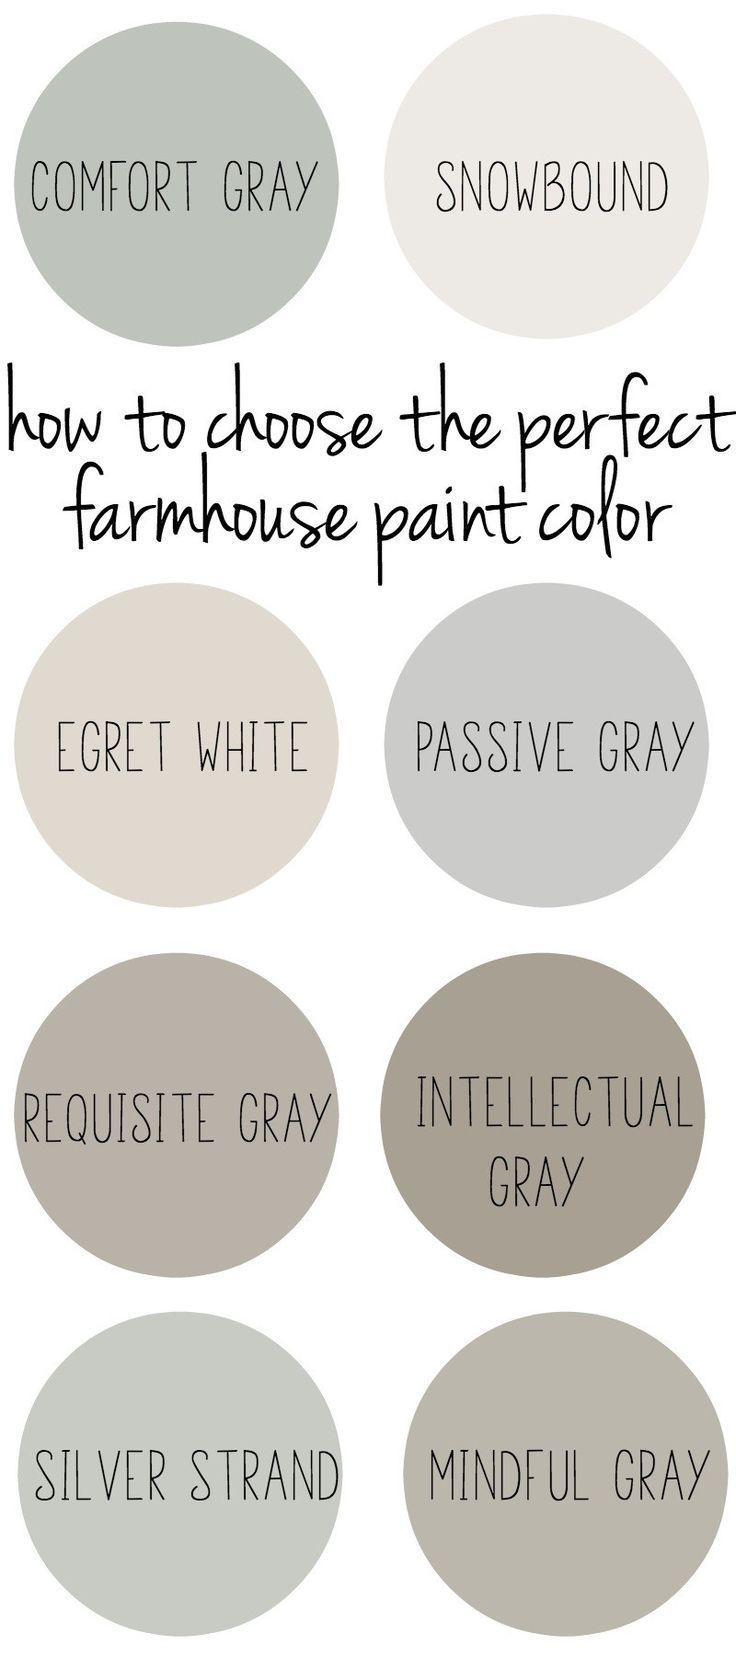 How to choose the perfect farmhouse style paint color. - http://home-painting.info/how-to-choose-the-perfect-farmhouse-style-paint-color/